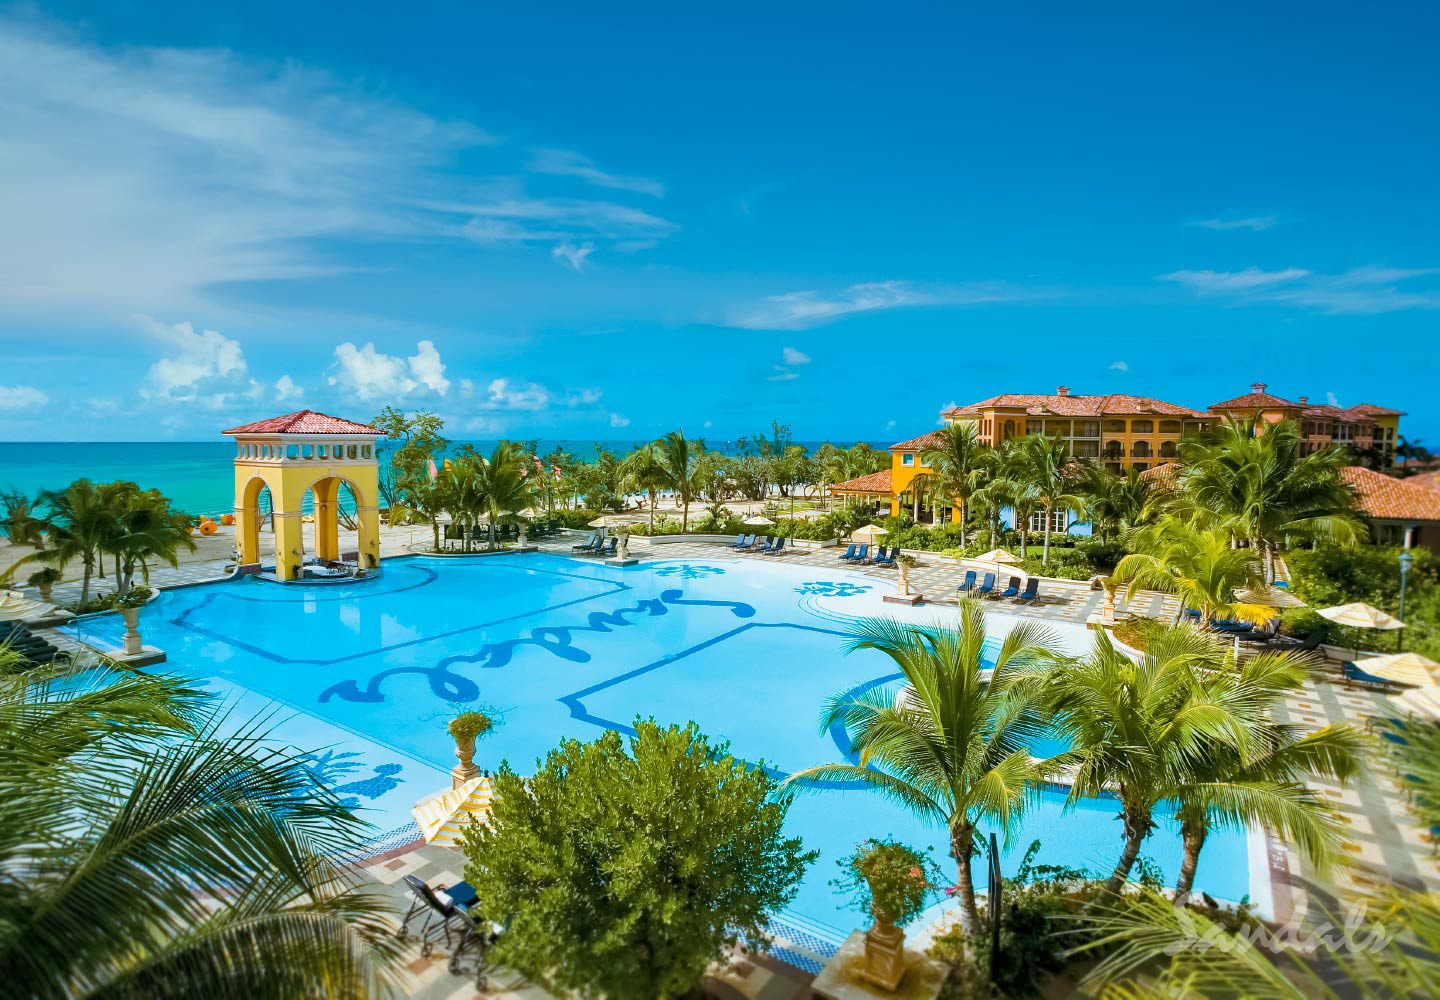 Sandals & Beaches Resorts   Want to do a destination wedding in the Caribbean? Or looking for something special to do for your anniversary? Want to Re-tie the Knot for your tenth anniversary? Want luxury at your finger tips?